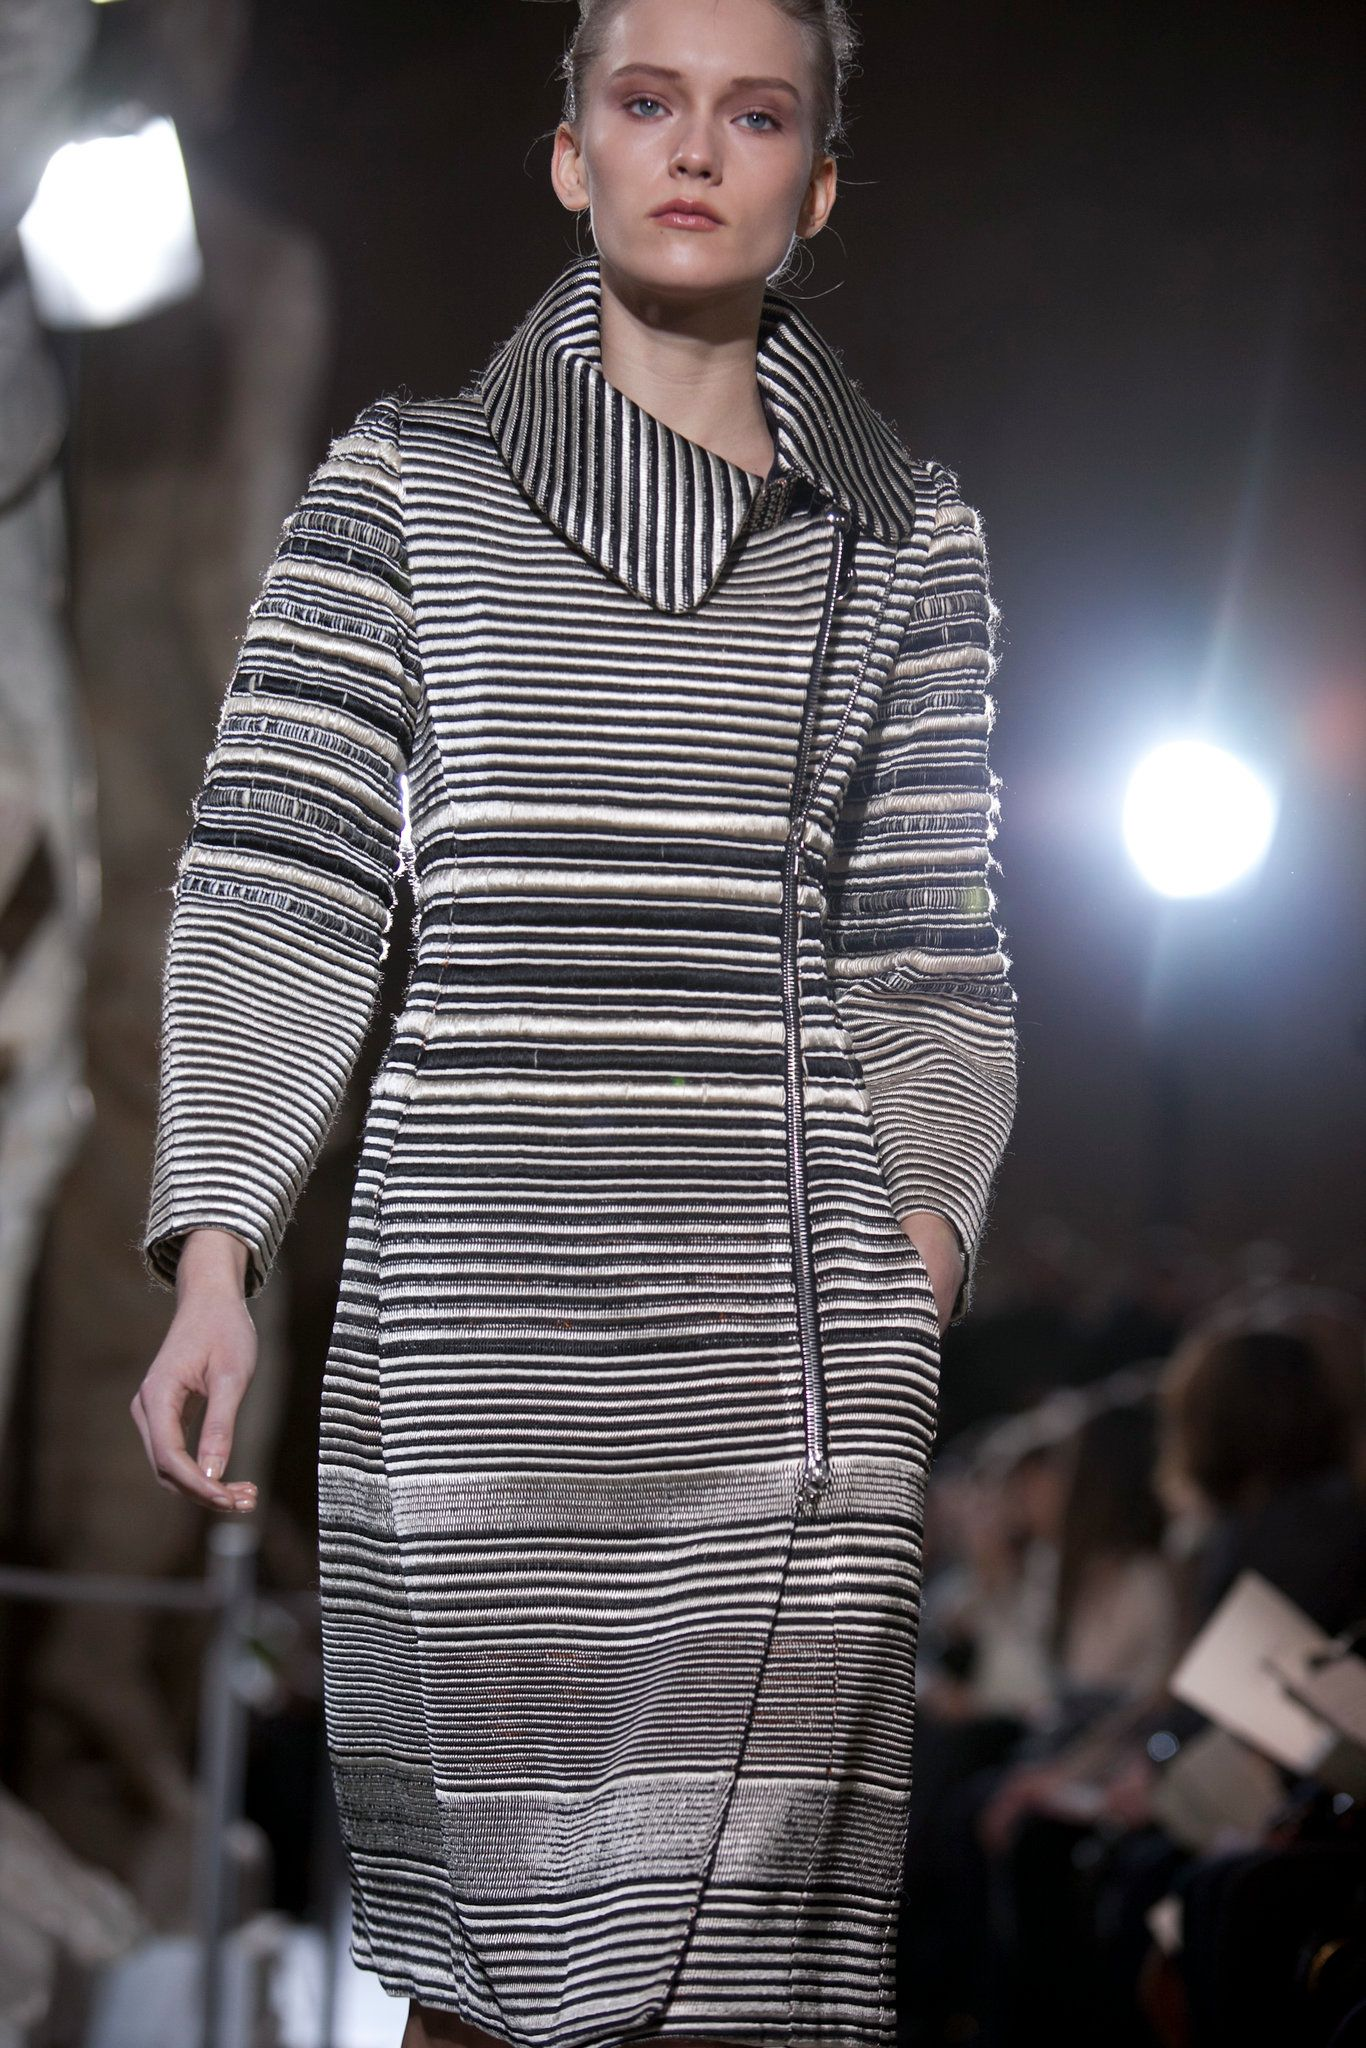 The designer, who opened her own brand in 2010, has been one of the few independent female designers working in Paris.